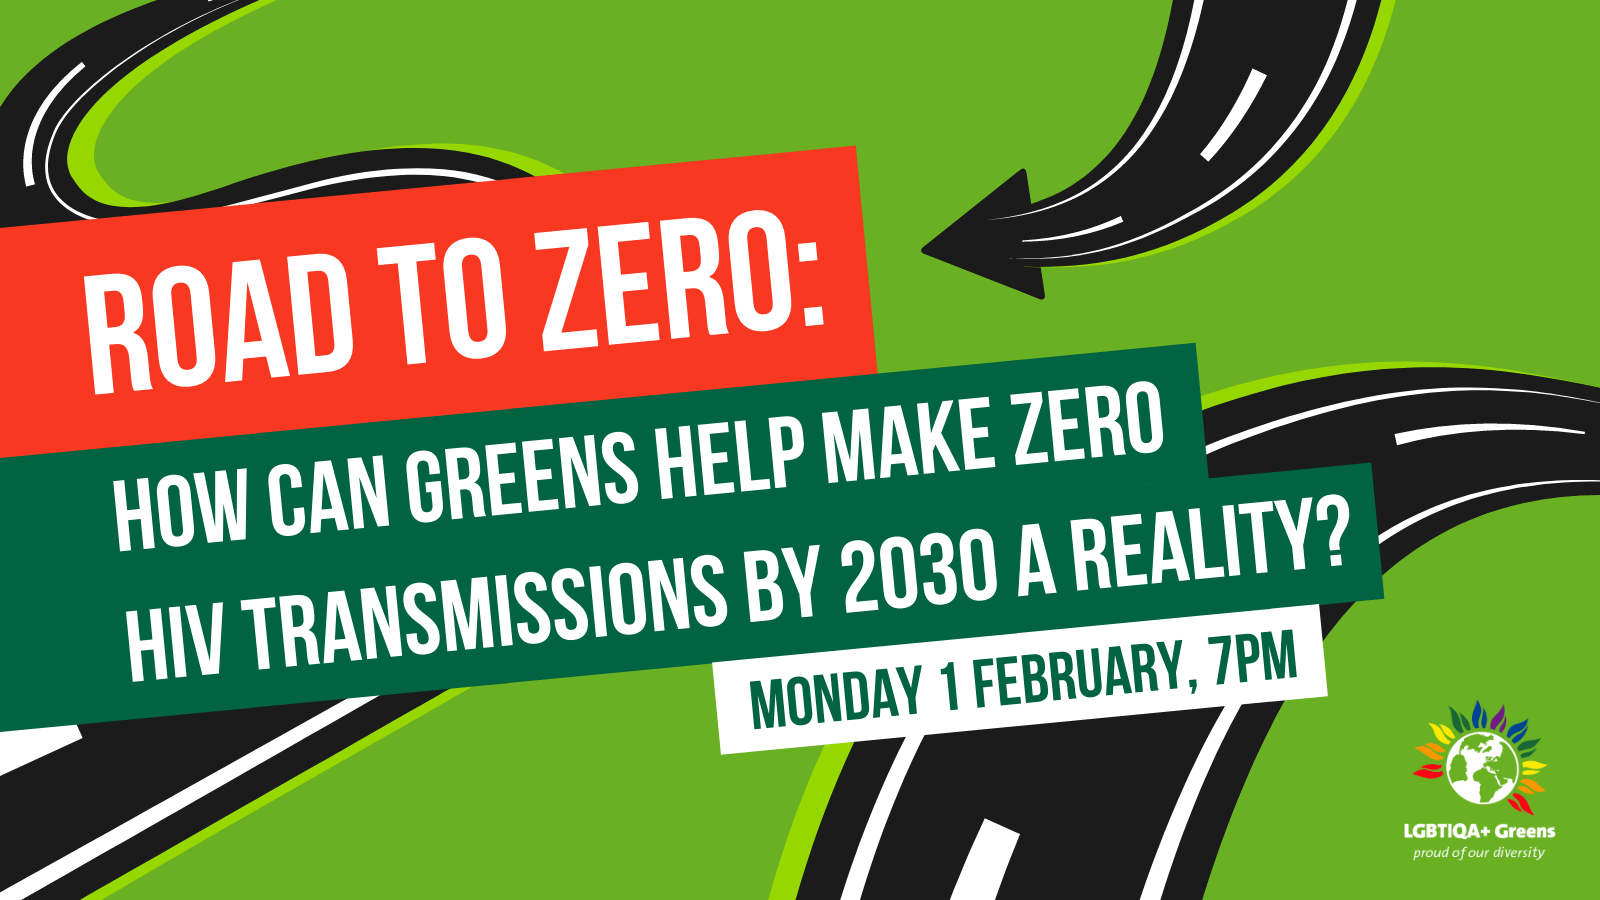 "The text ""Road to Zero: How Can Greens Help Make Zero HIV Trasmissions By 2030 A Reality? Monday 1st February, 7pm"" overlaying winding graphical roads looping over a green background."